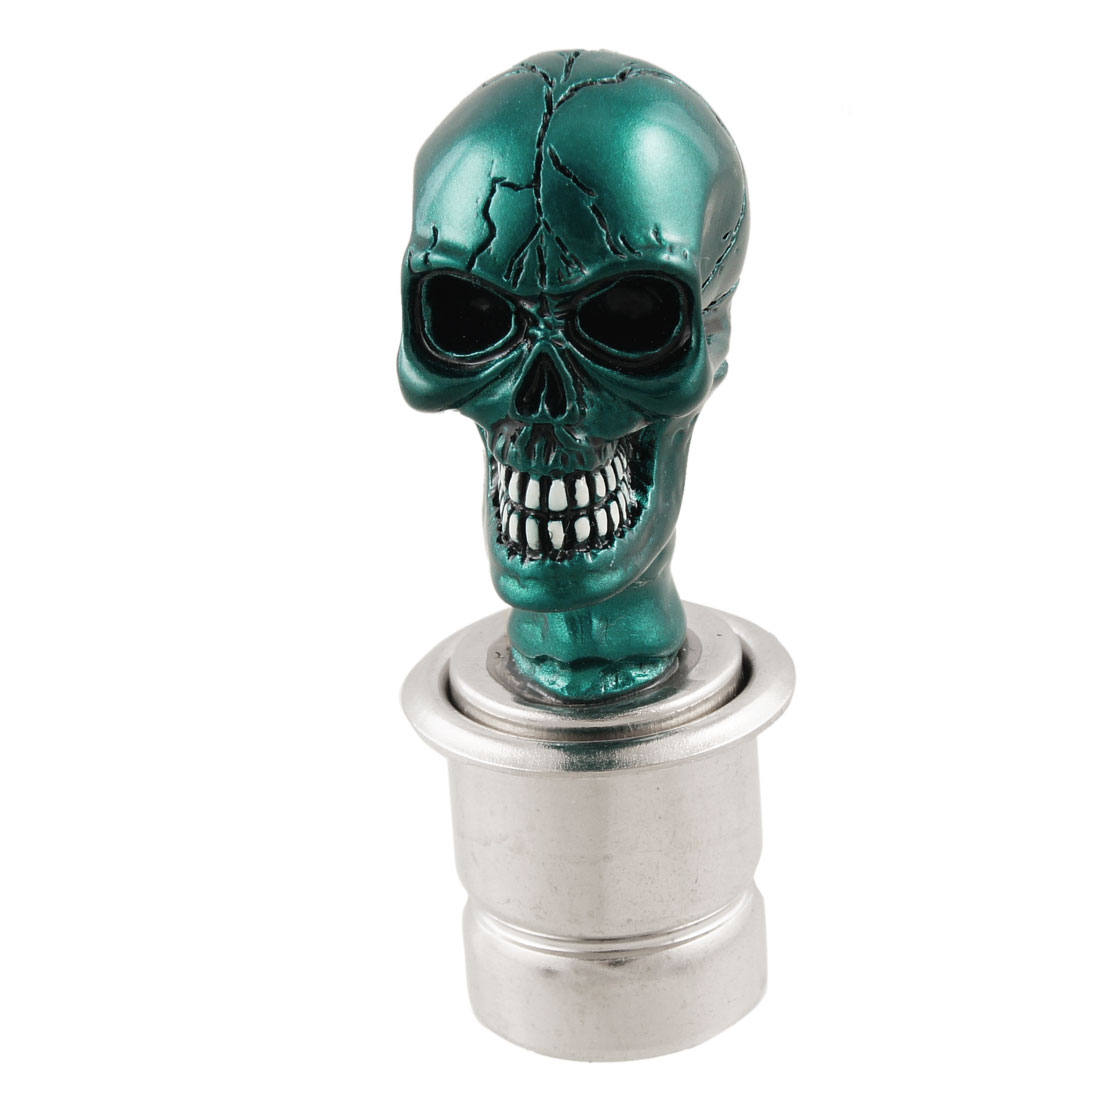 Teal Green Skull Head Shape Universal 12V Car Cigarette Lighter